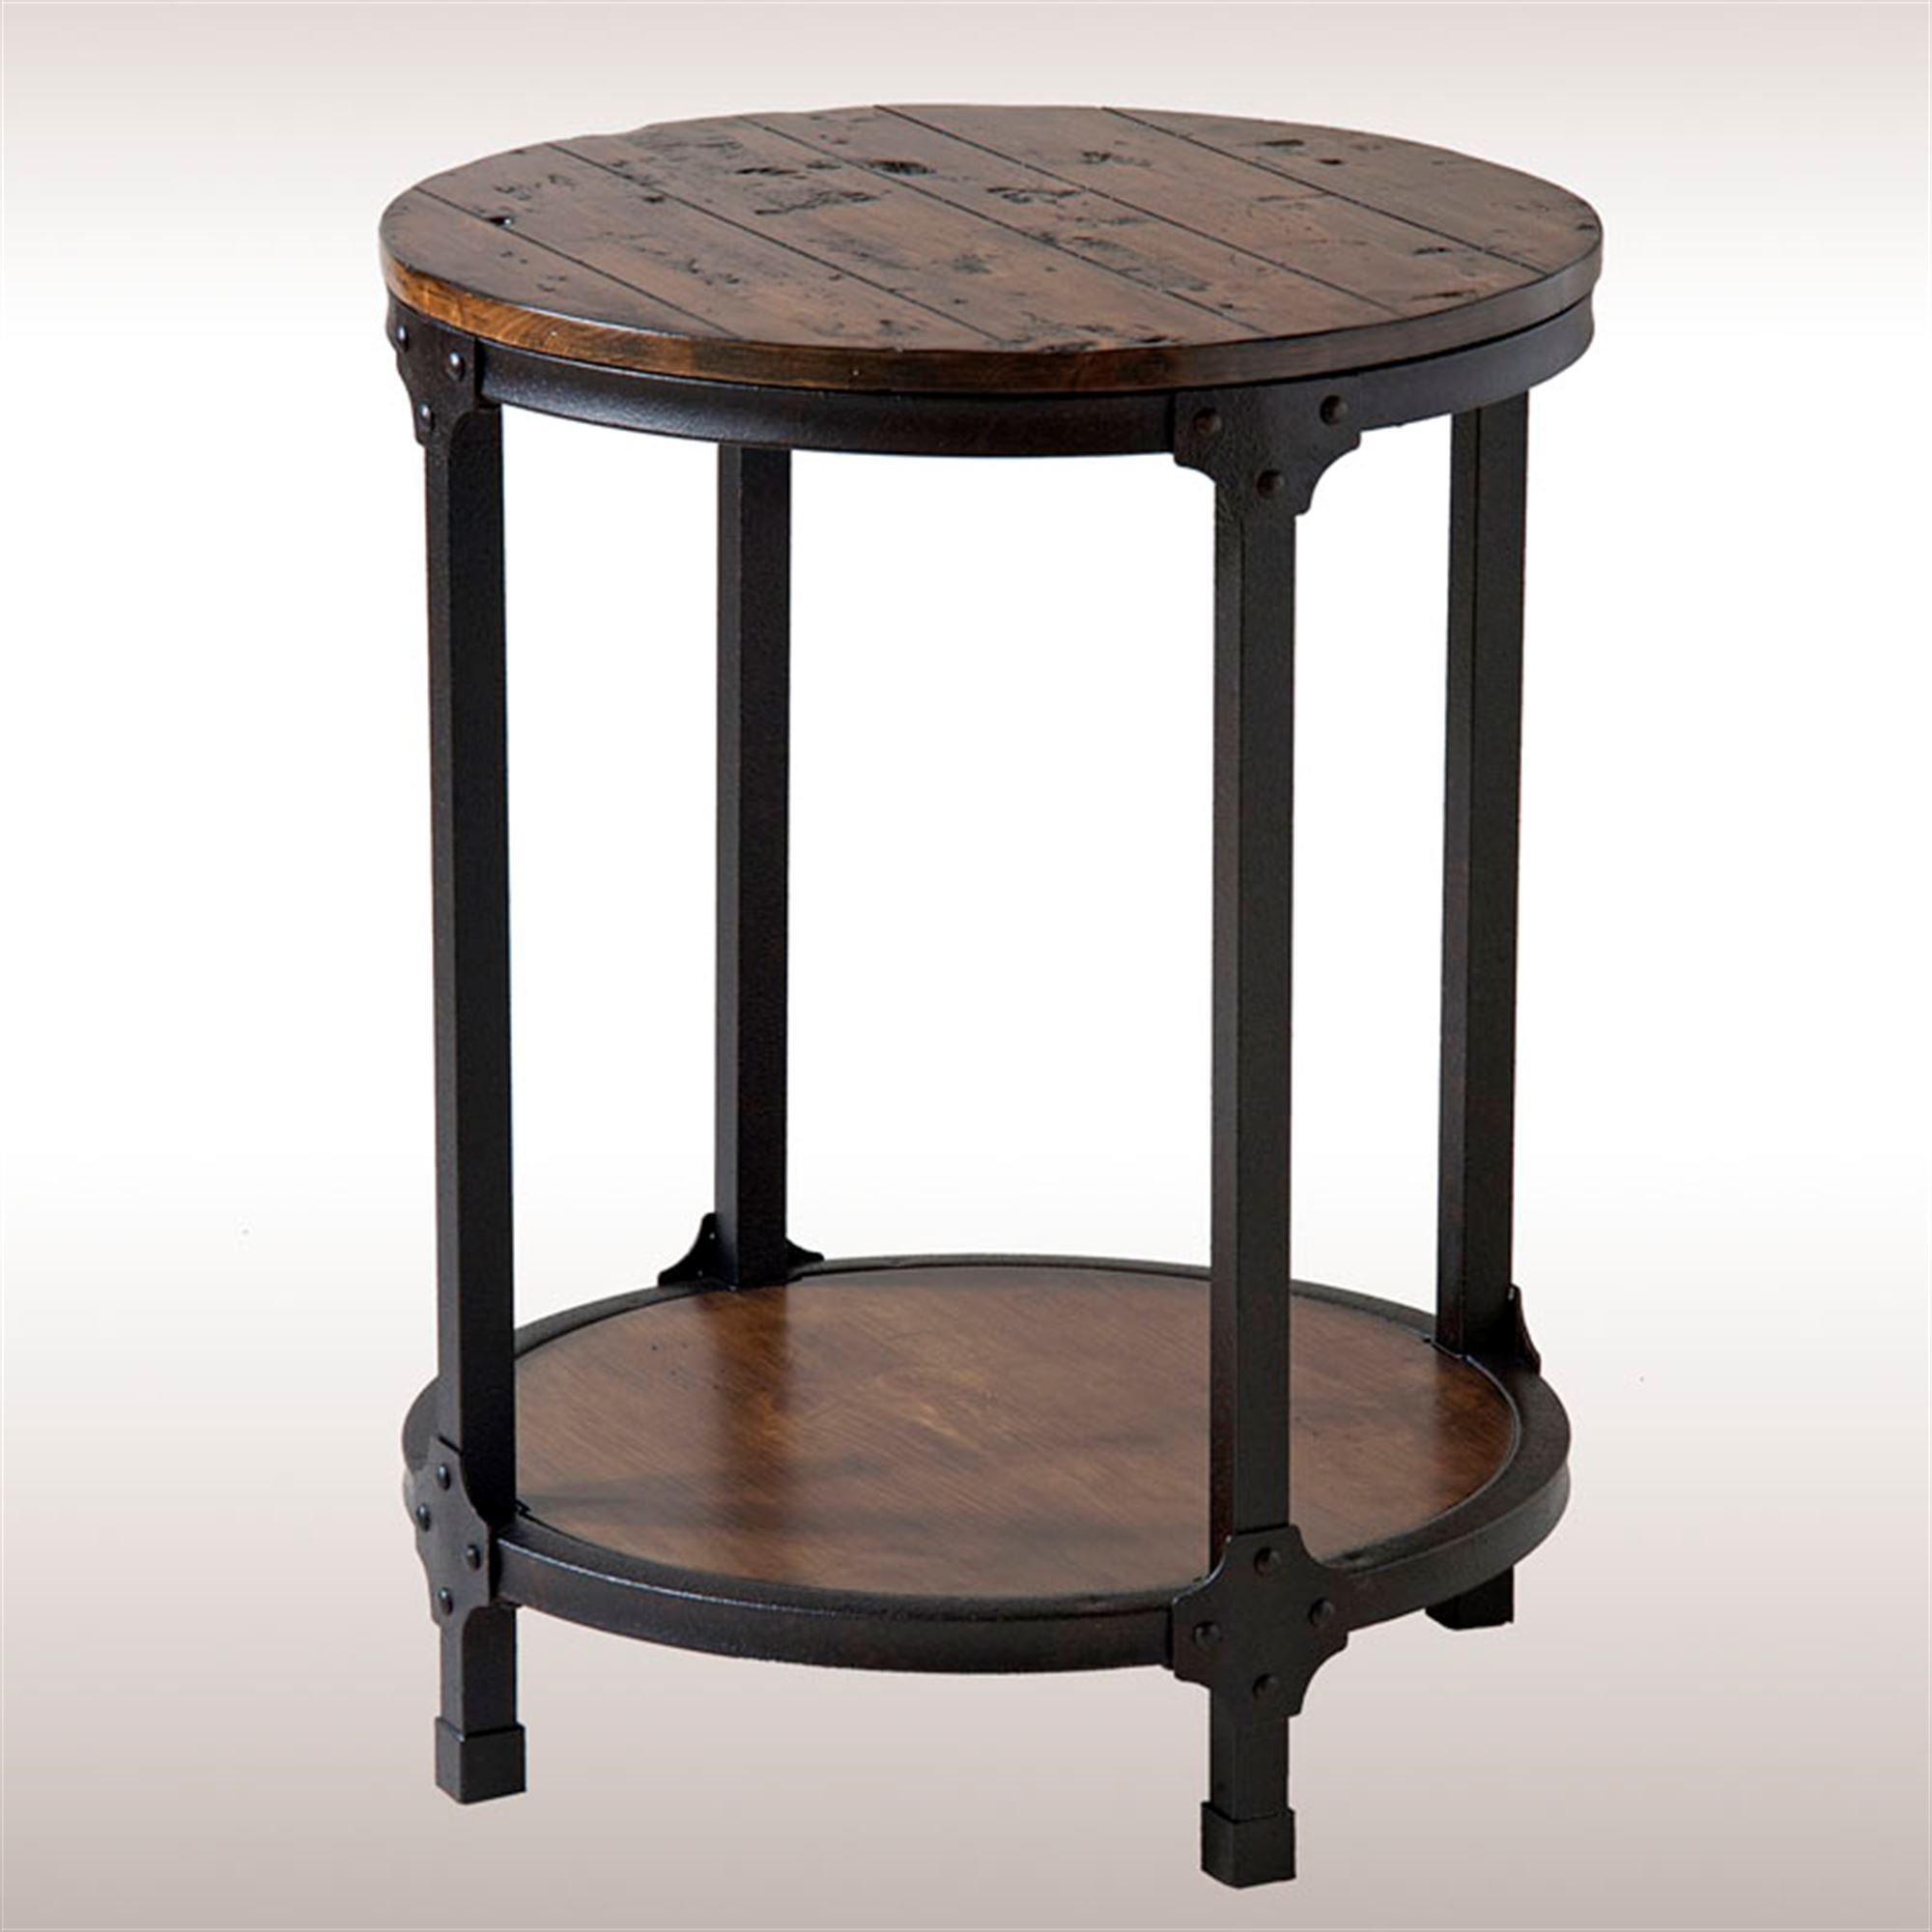 round black kitchen table decor rustic accent cottage timmy night hollywood mirrored side monarch bentwood with tempered glass outdoor rectangular half moon shaped console tables